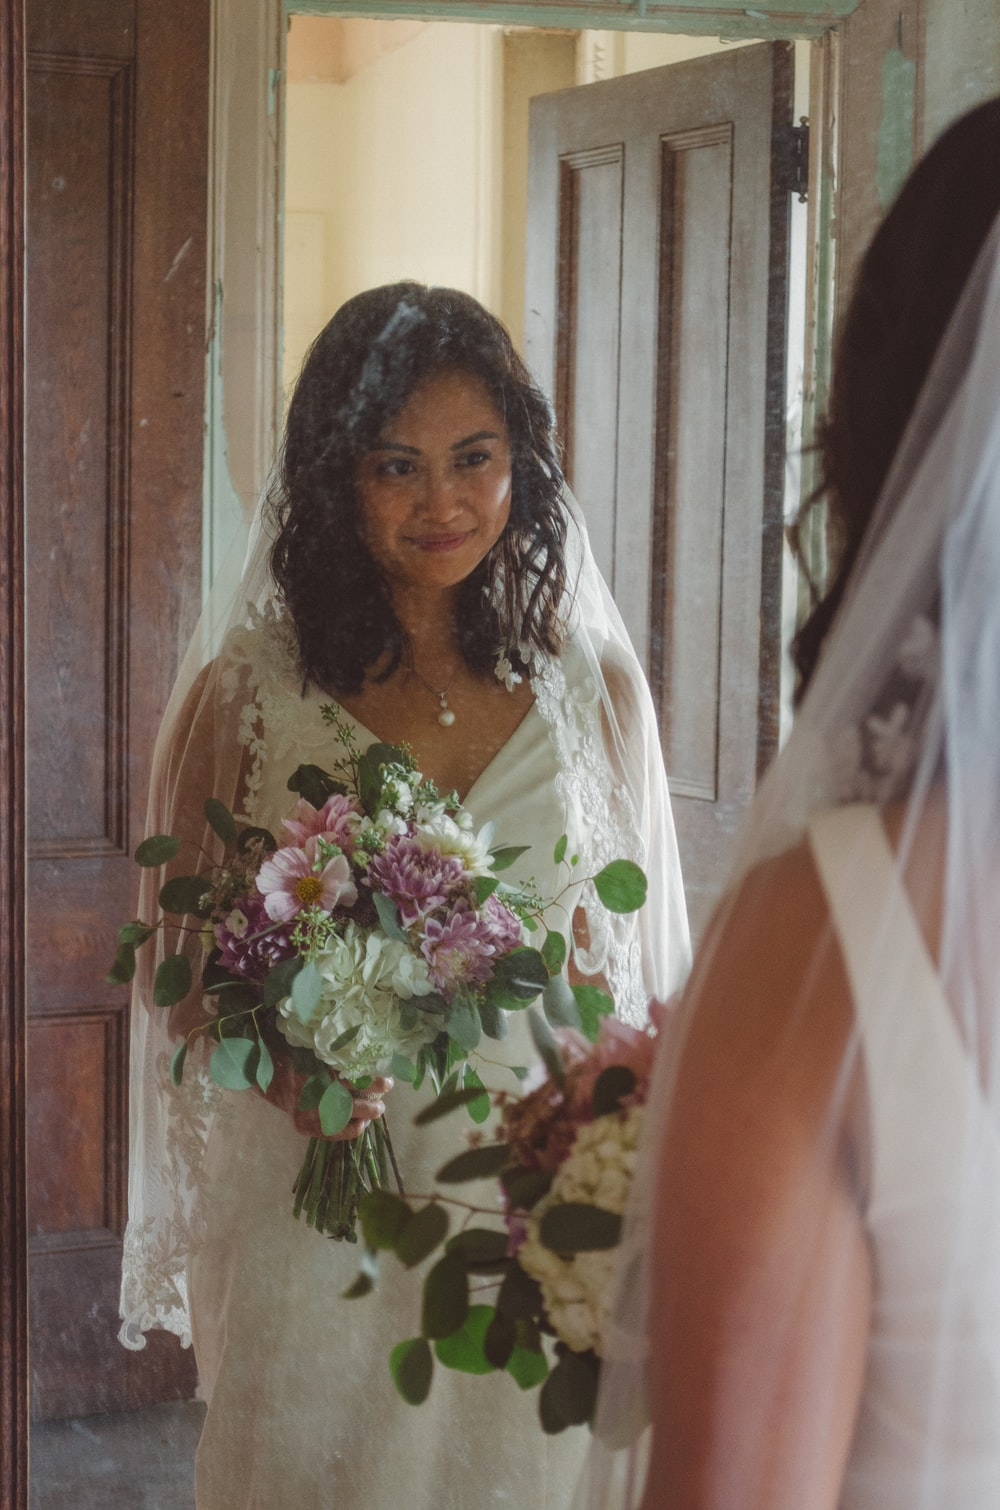 smiling woman in front of mirror wearing white wedding gown and holding flowers